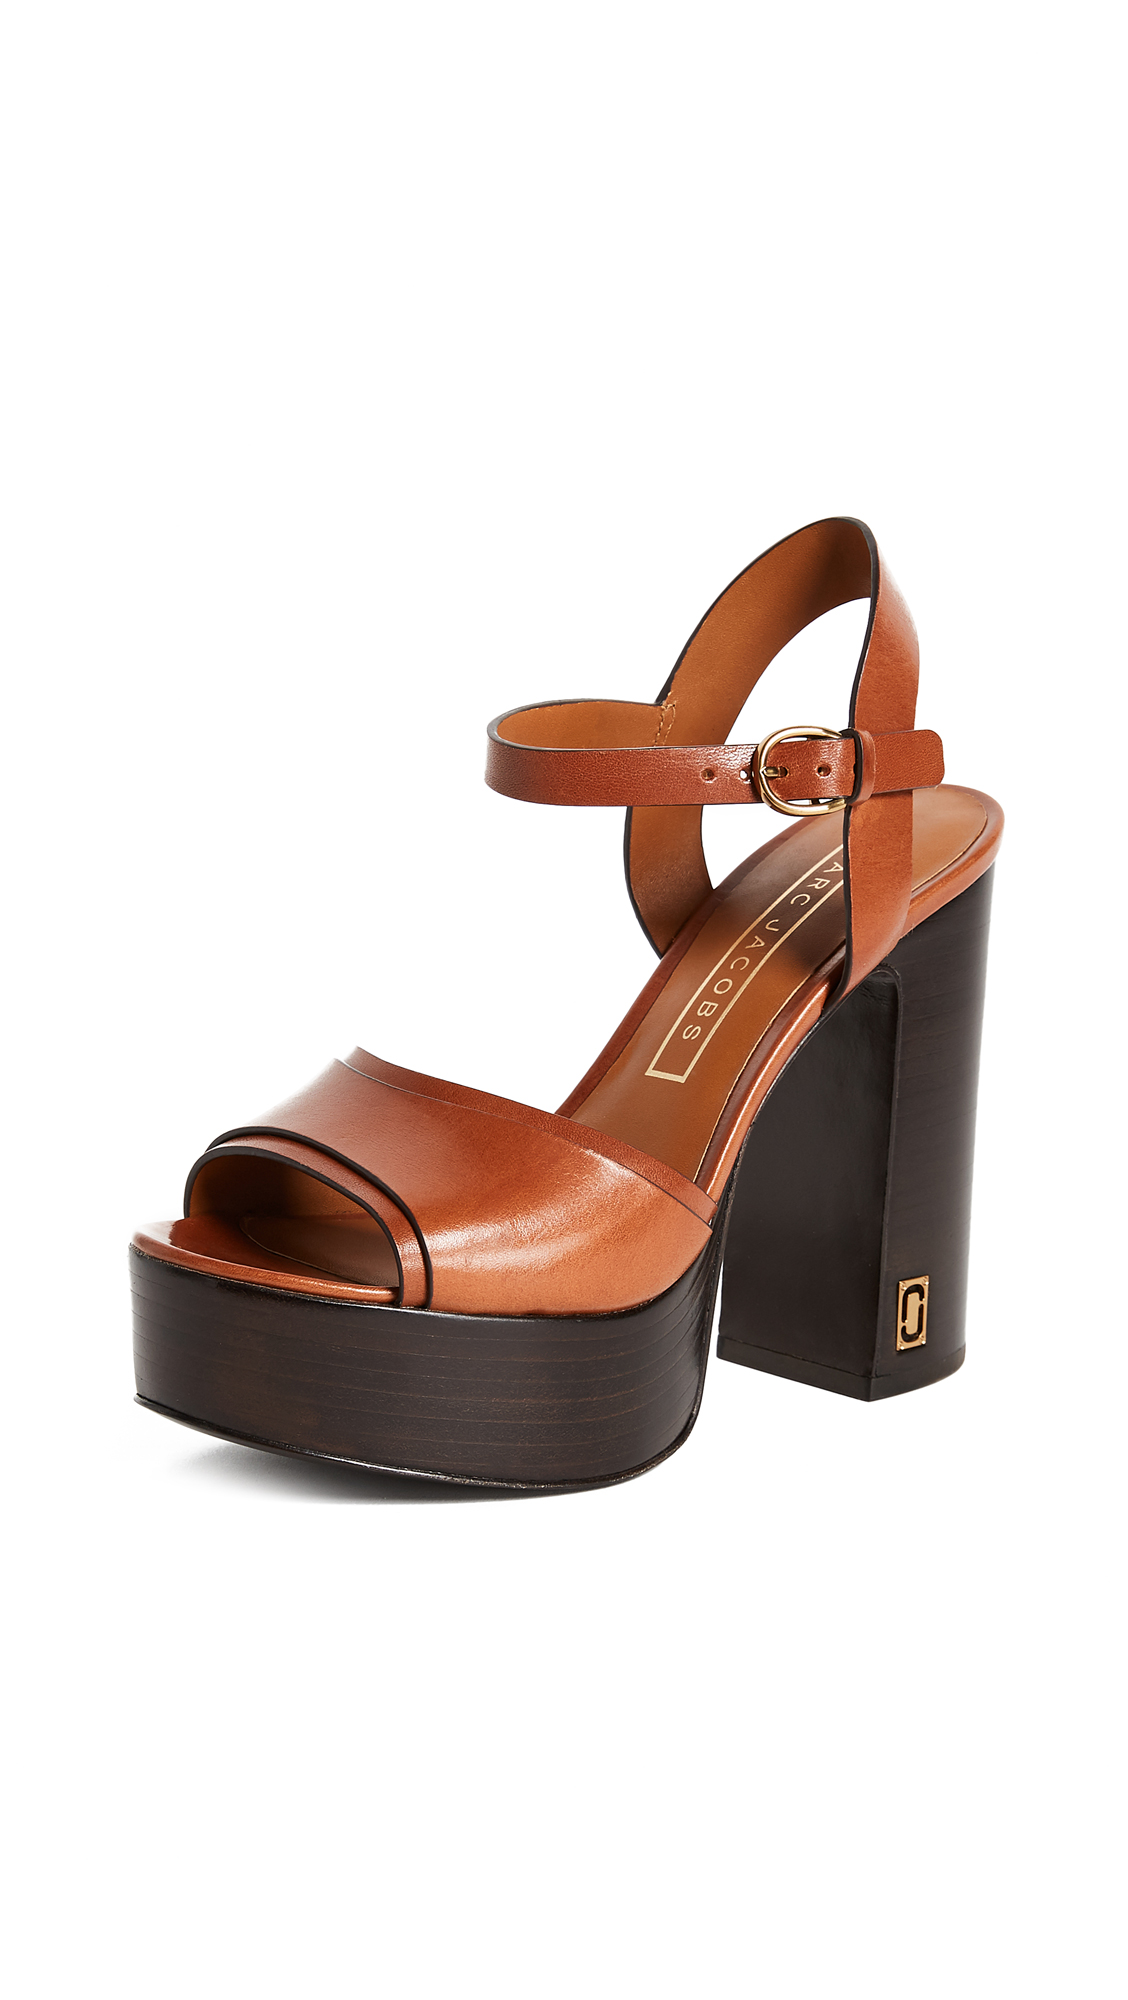 Photo of Marc Jacobs Lust Status Platform Sandals - buy Marc Jacobs shoes